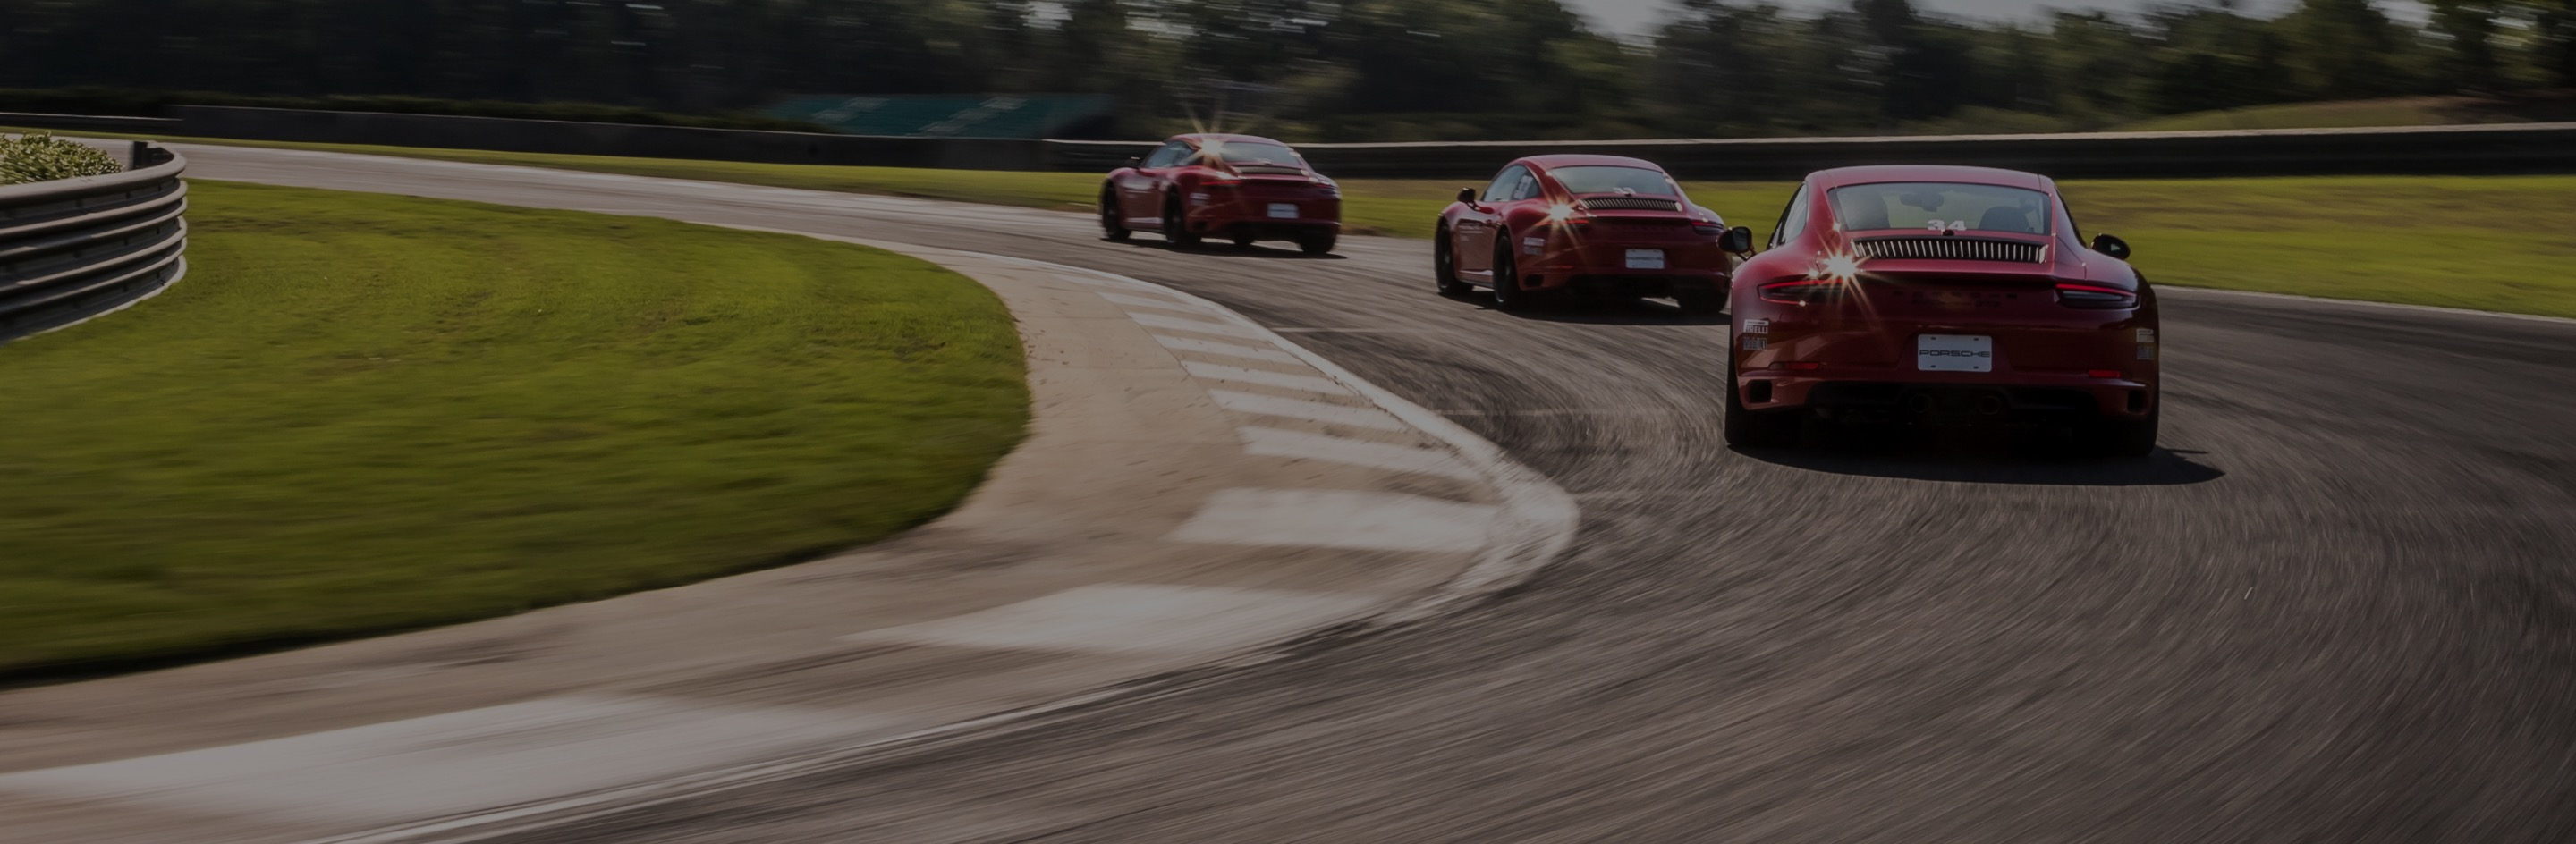 three red porsches rounding a corner on the track